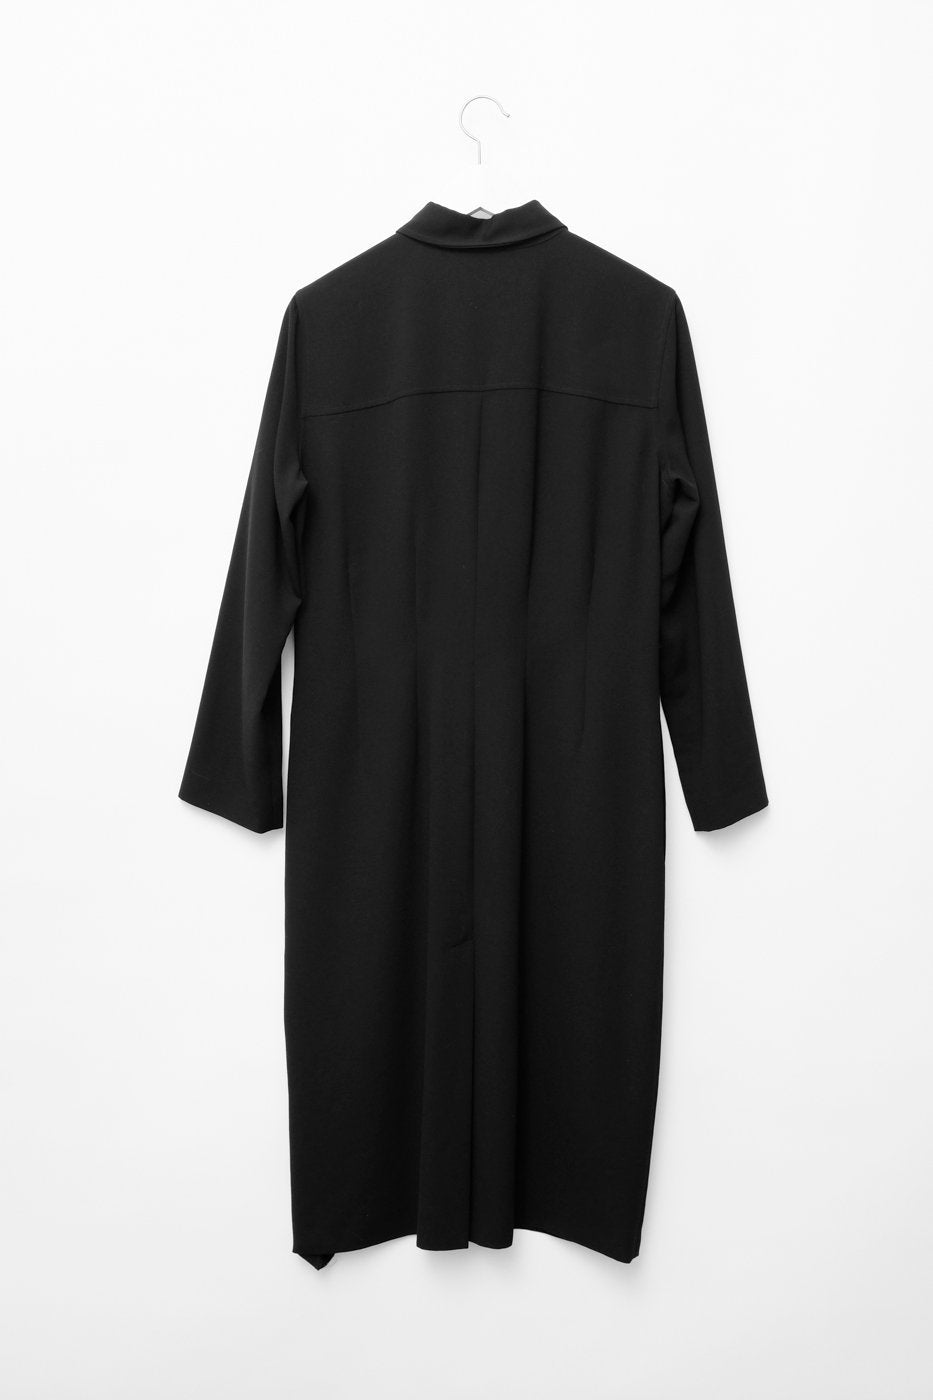 0313_CLEAN MINIMAL BLACK SHIRT DRESS